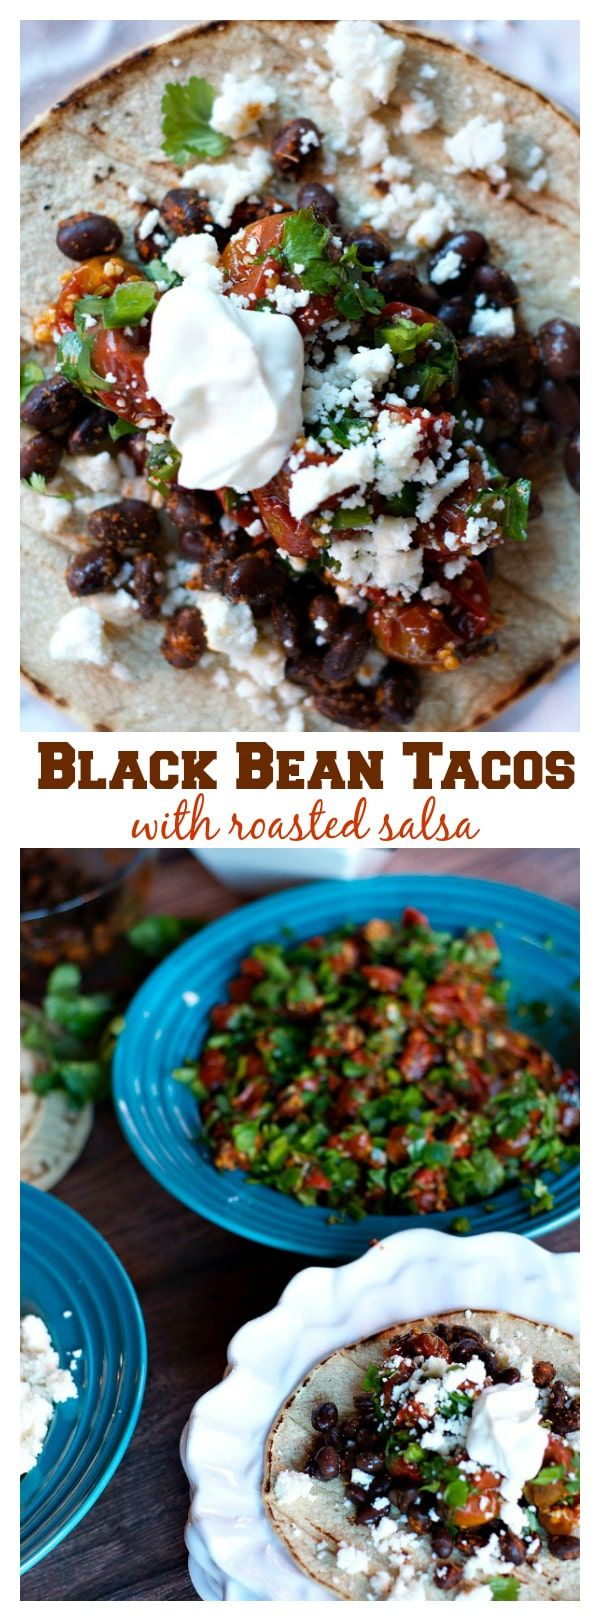 Black Bean Tacos with Roasted Salsa